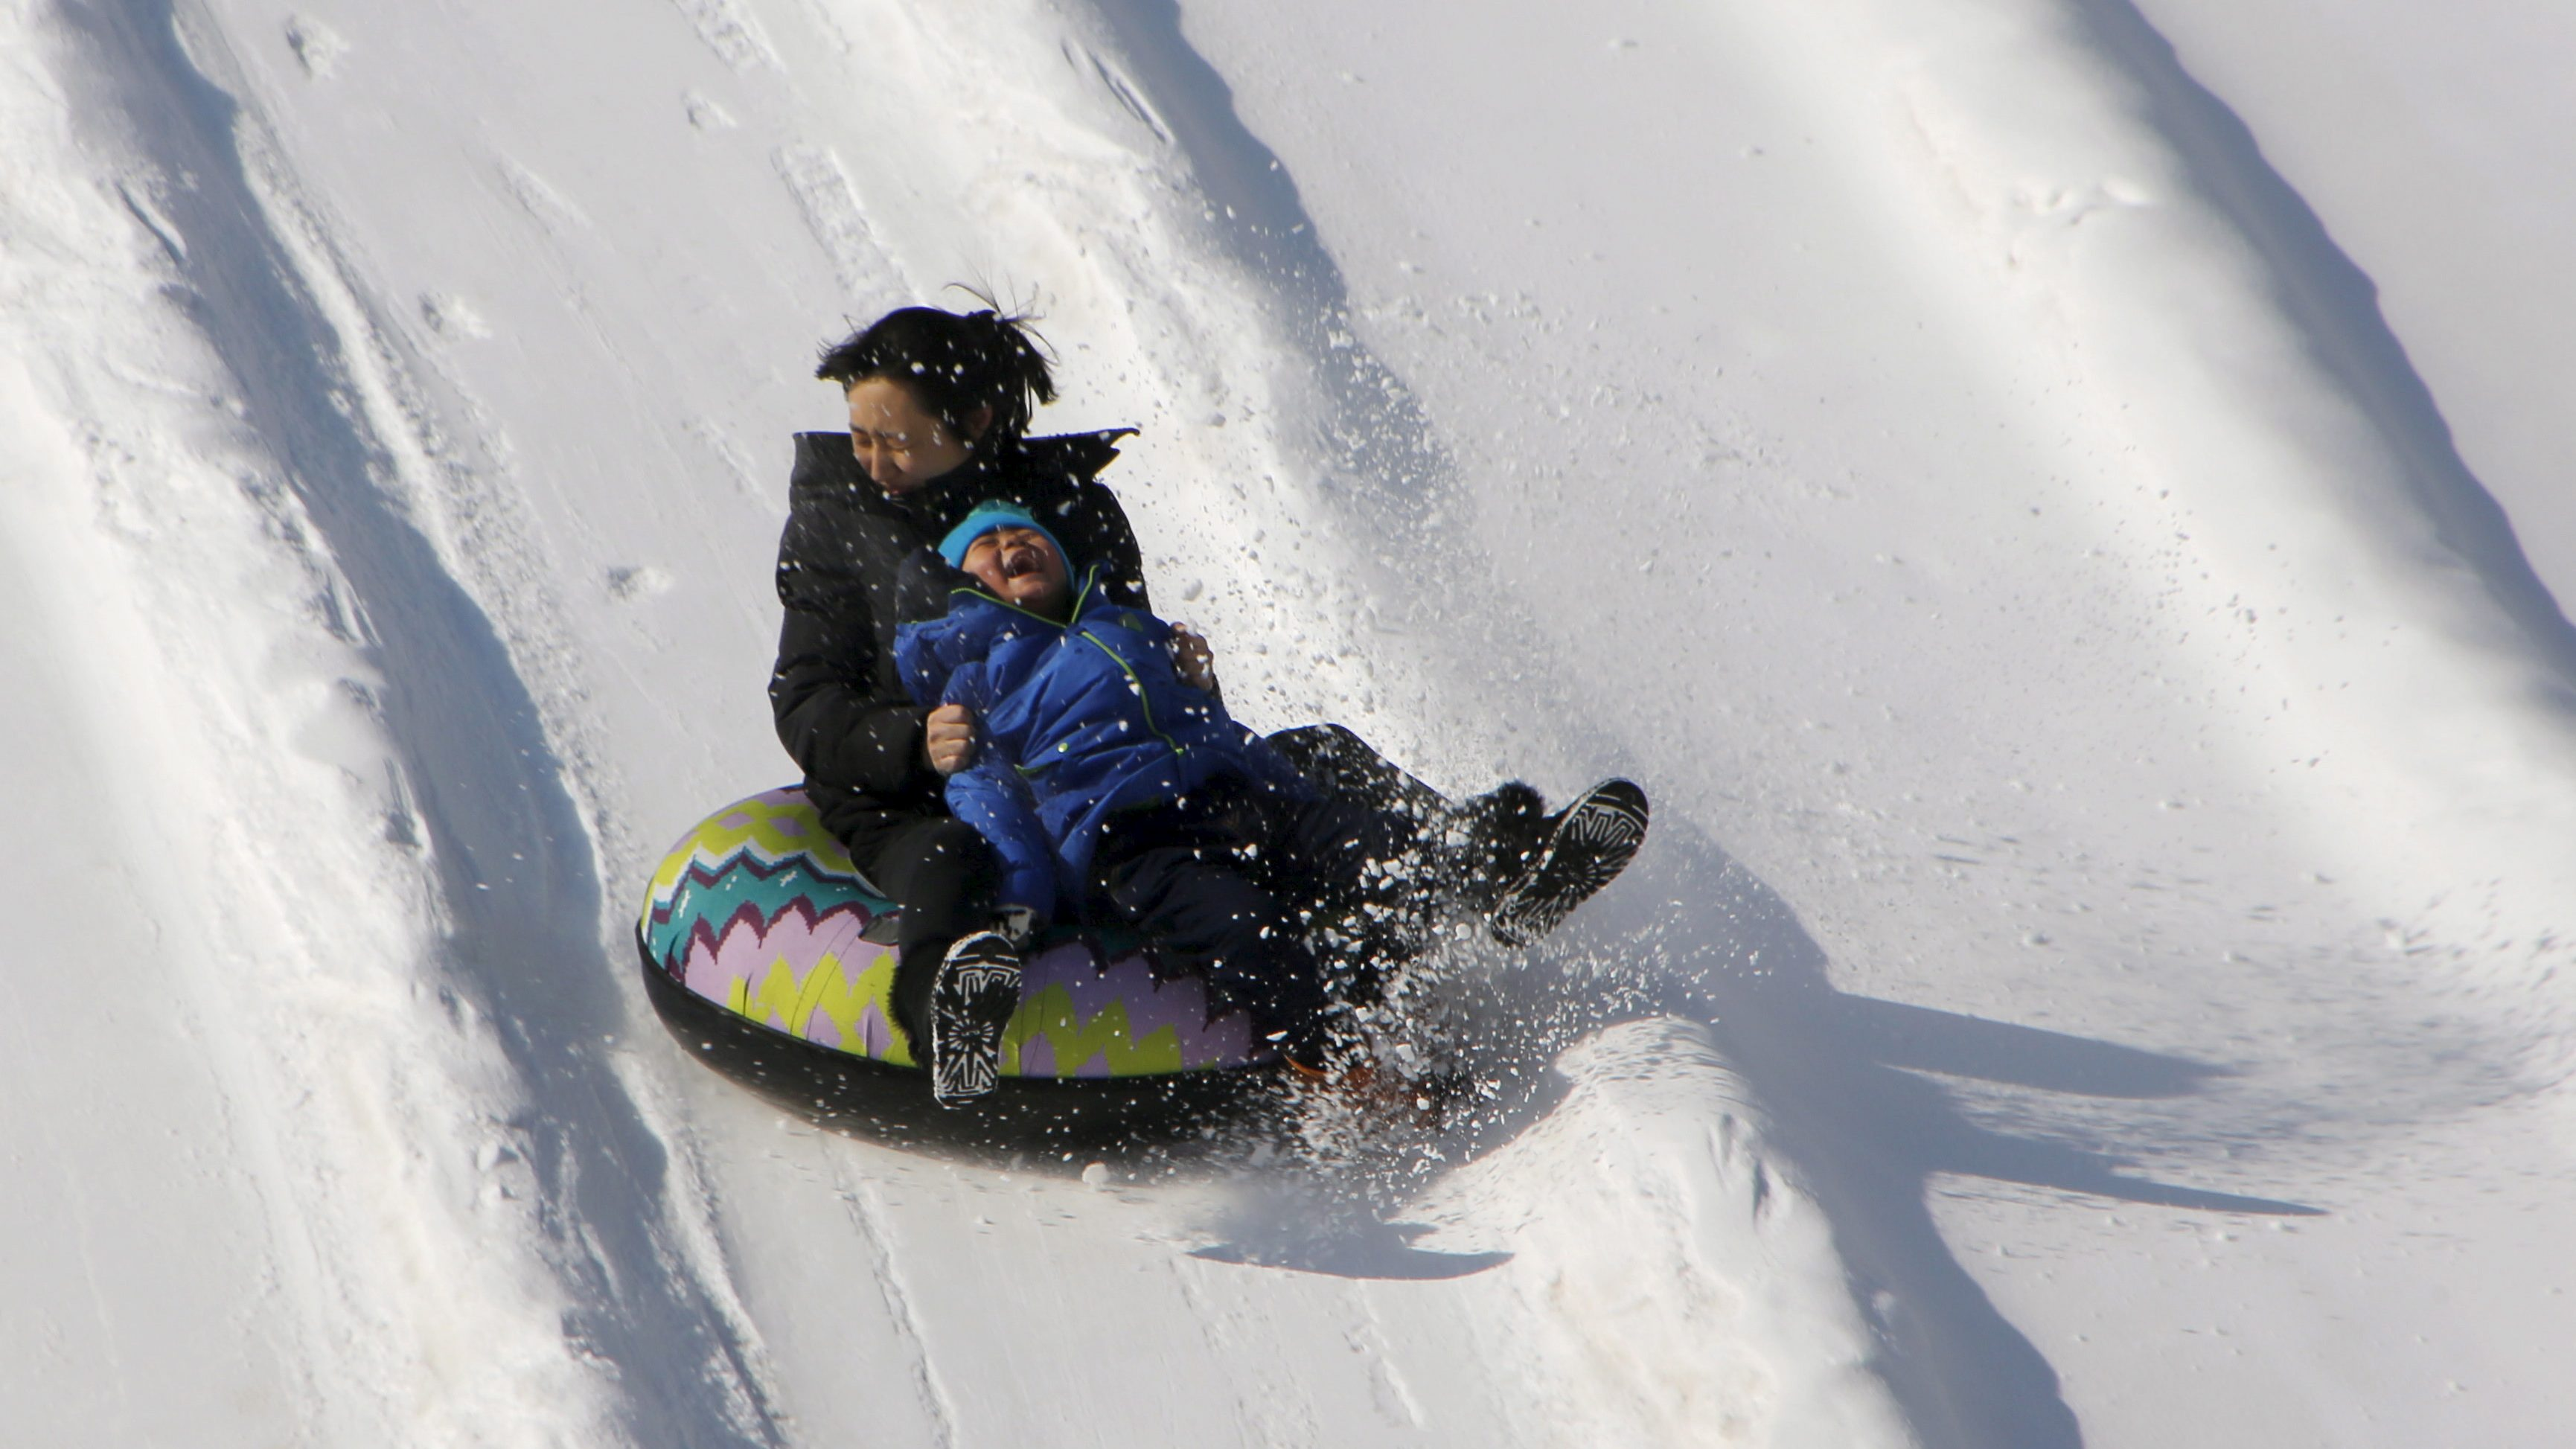 A woman and a boy on a tube ride a slide covered with snow during the Ice and Snow carnival at Taoranting park in Beijing, China, January 25, 2016.